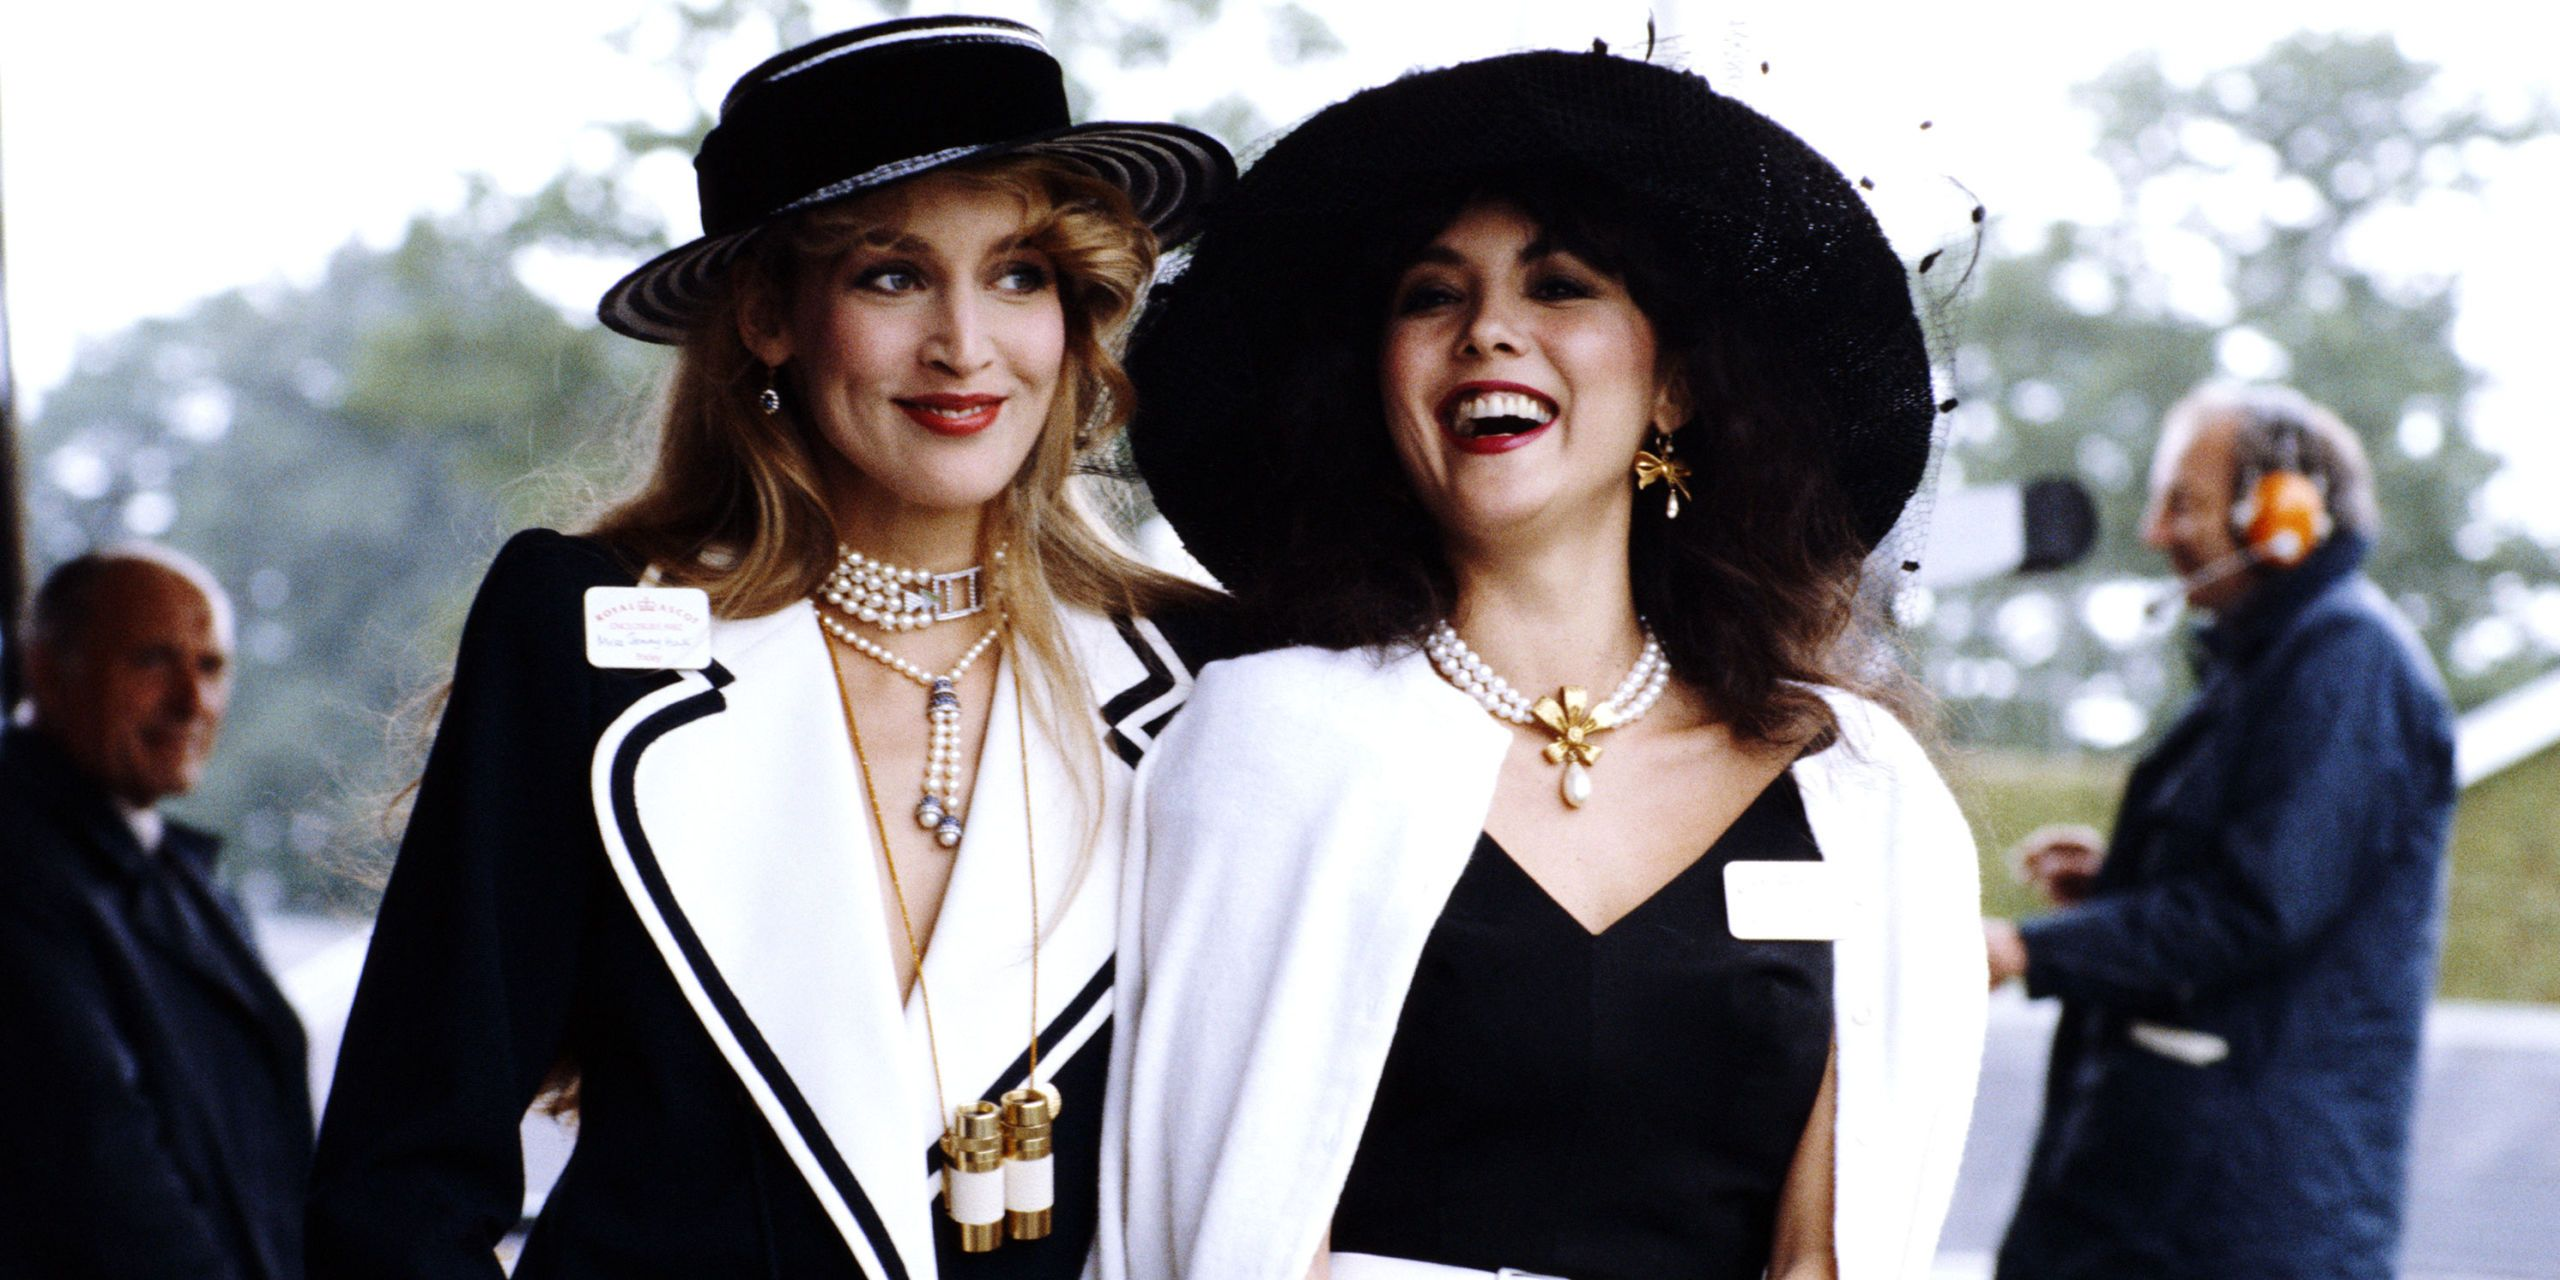 The Best of 80s Fashion   Vintage 80s Outfits and Fashion Trends image